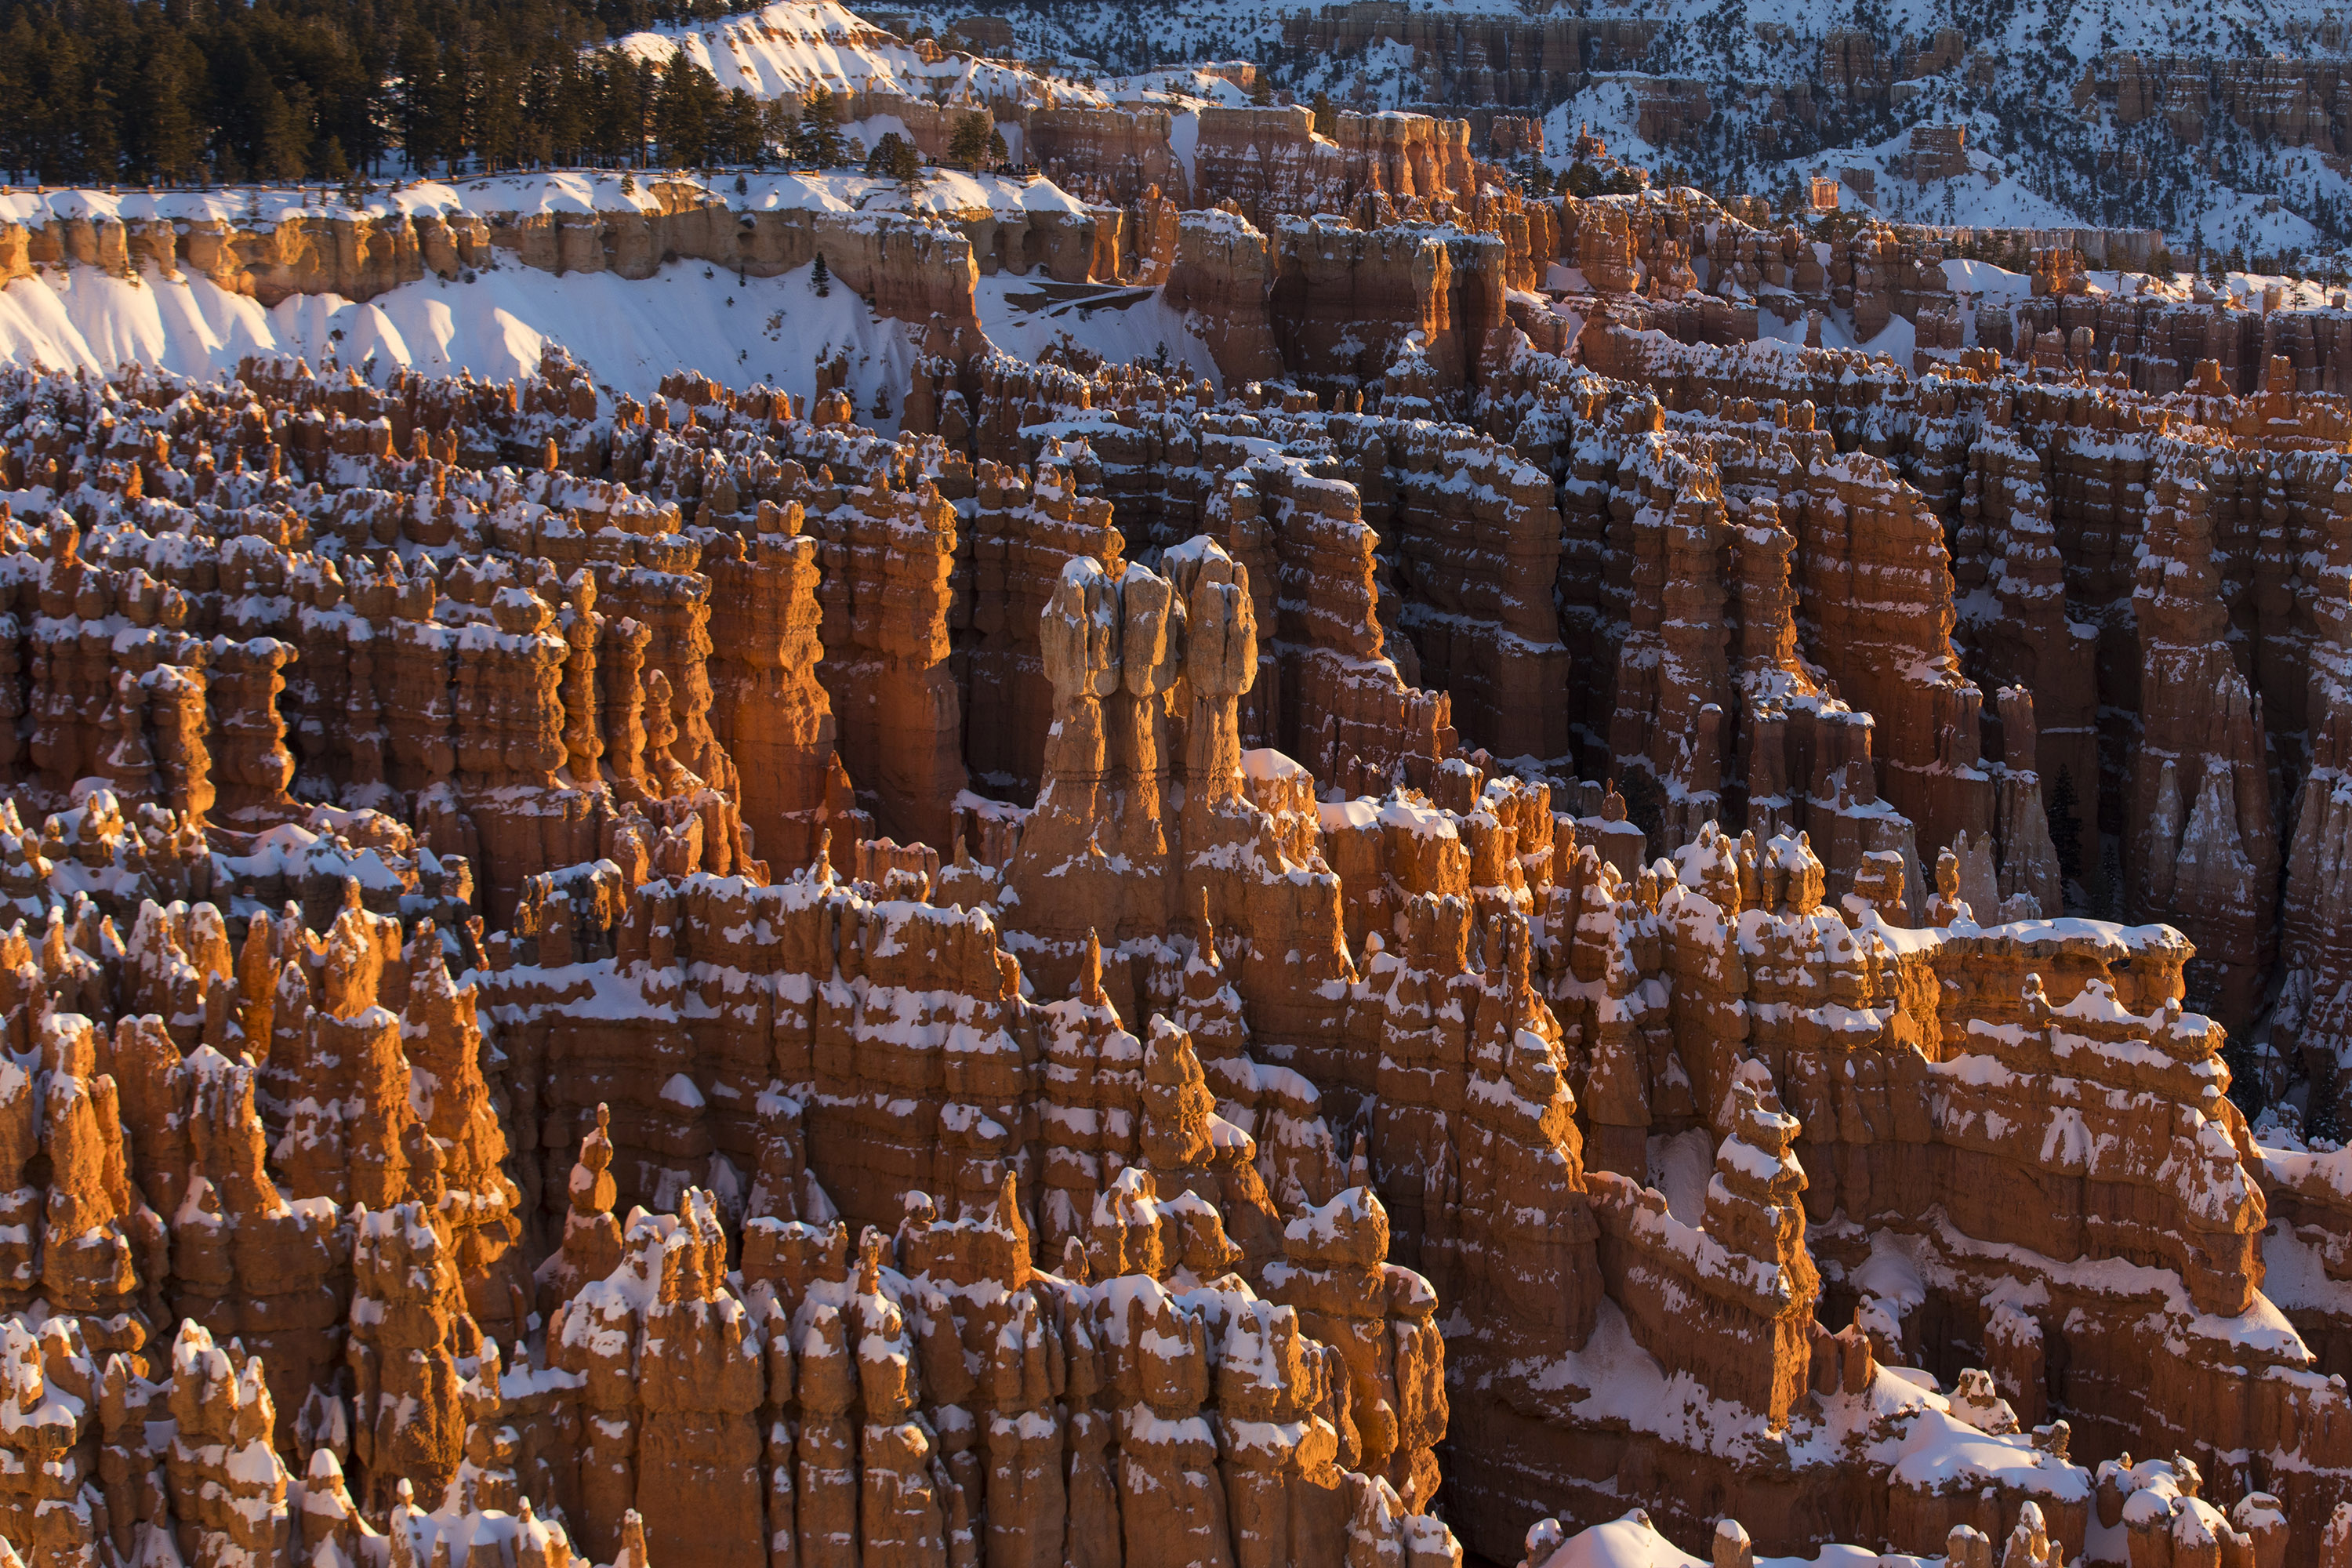 Bryce Canyon National Park on Jan. 28, 2017 in Bryce Canyon City, Utah. (Ric Tapia via AP)